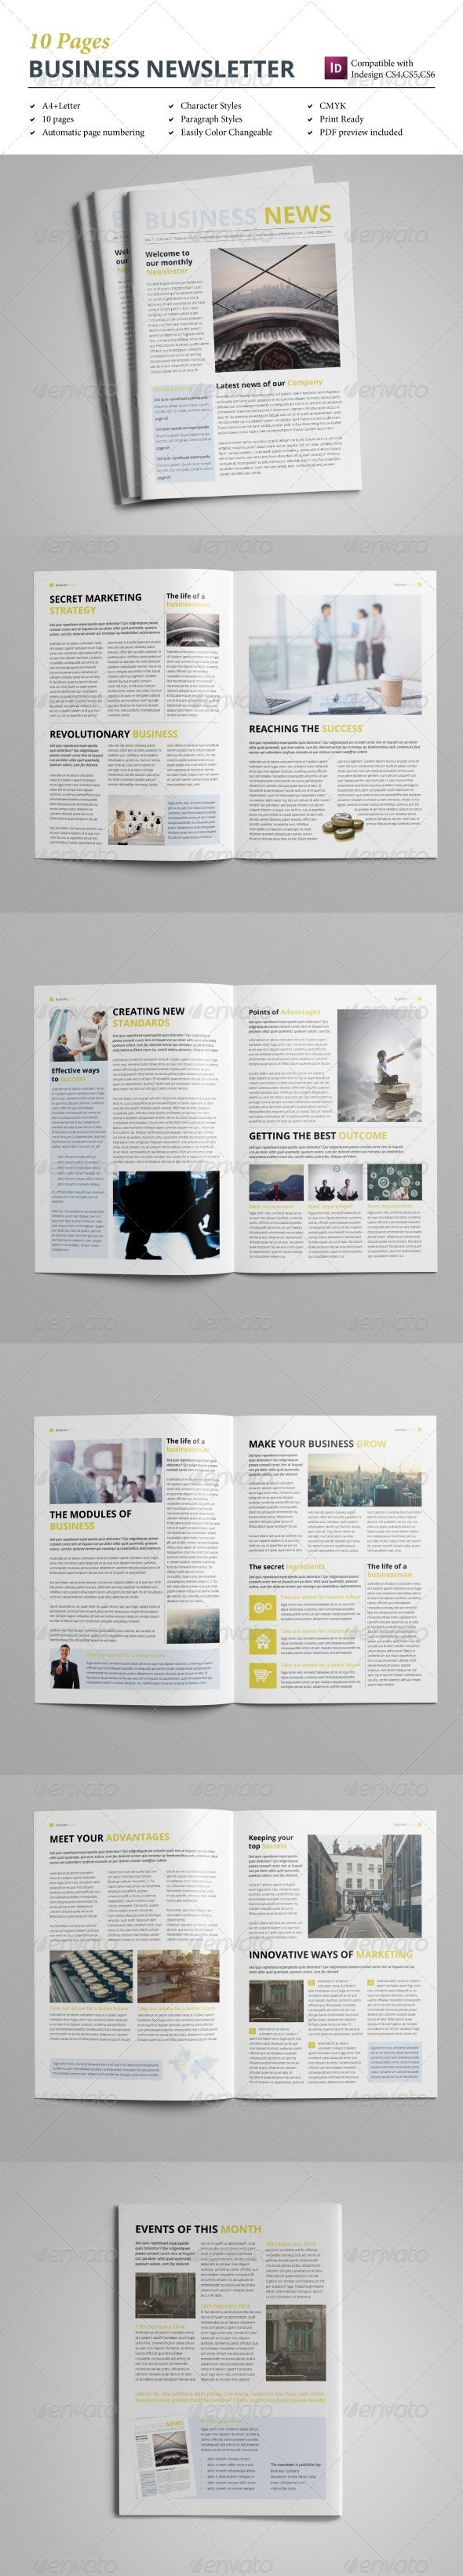 GraphicRiver Business Newletter vol 2 8617901